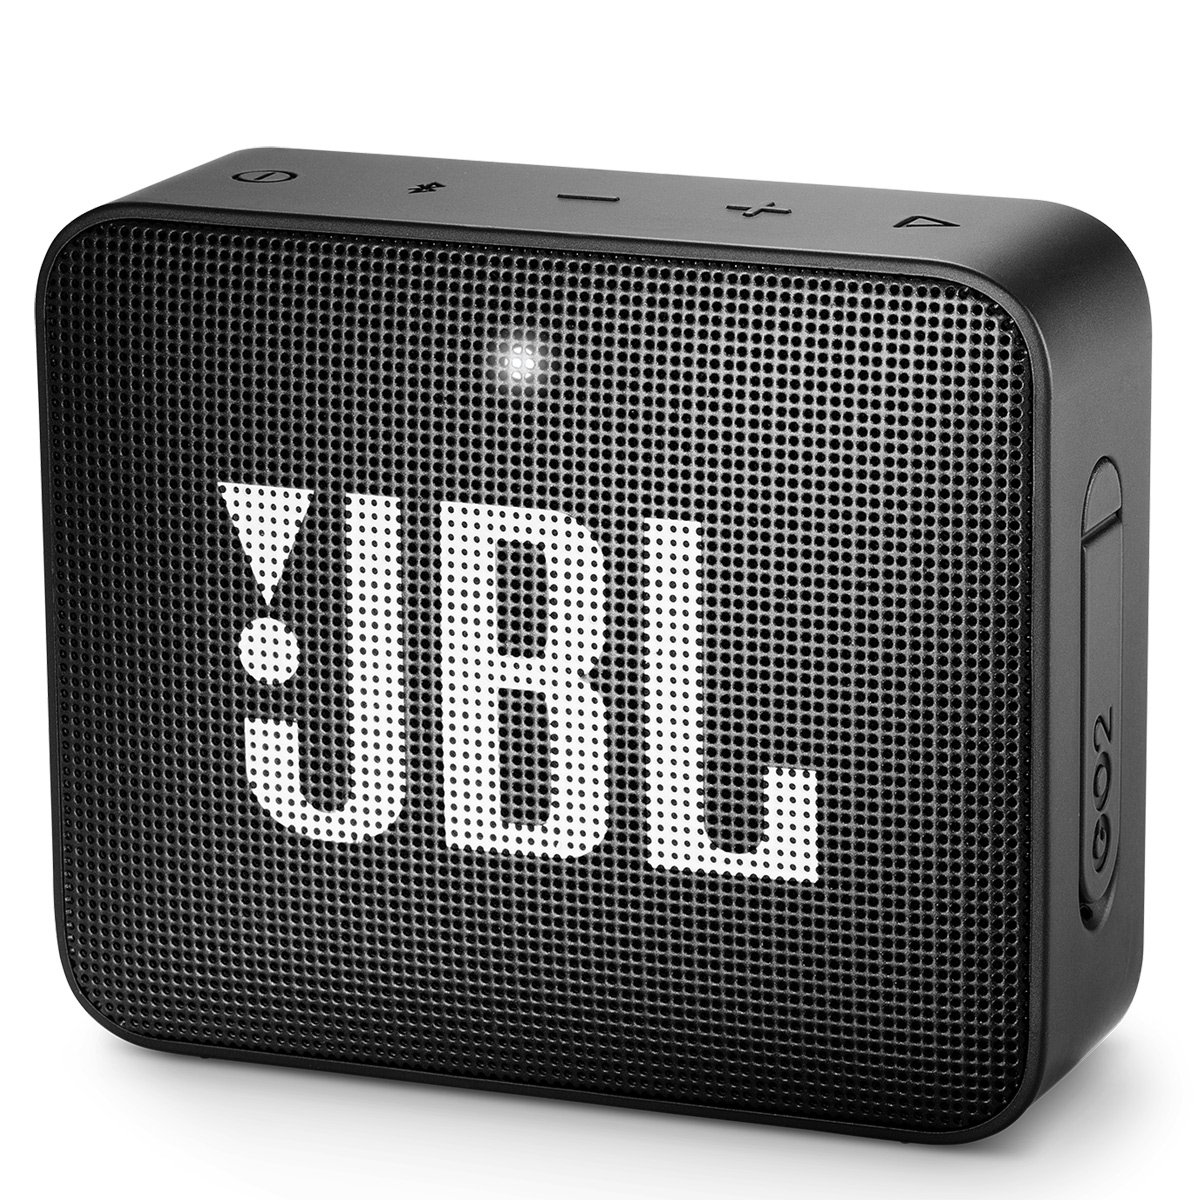 JBL GO2 Waterproof Ultra Portable Bluetooth Speaker - Black by JBL